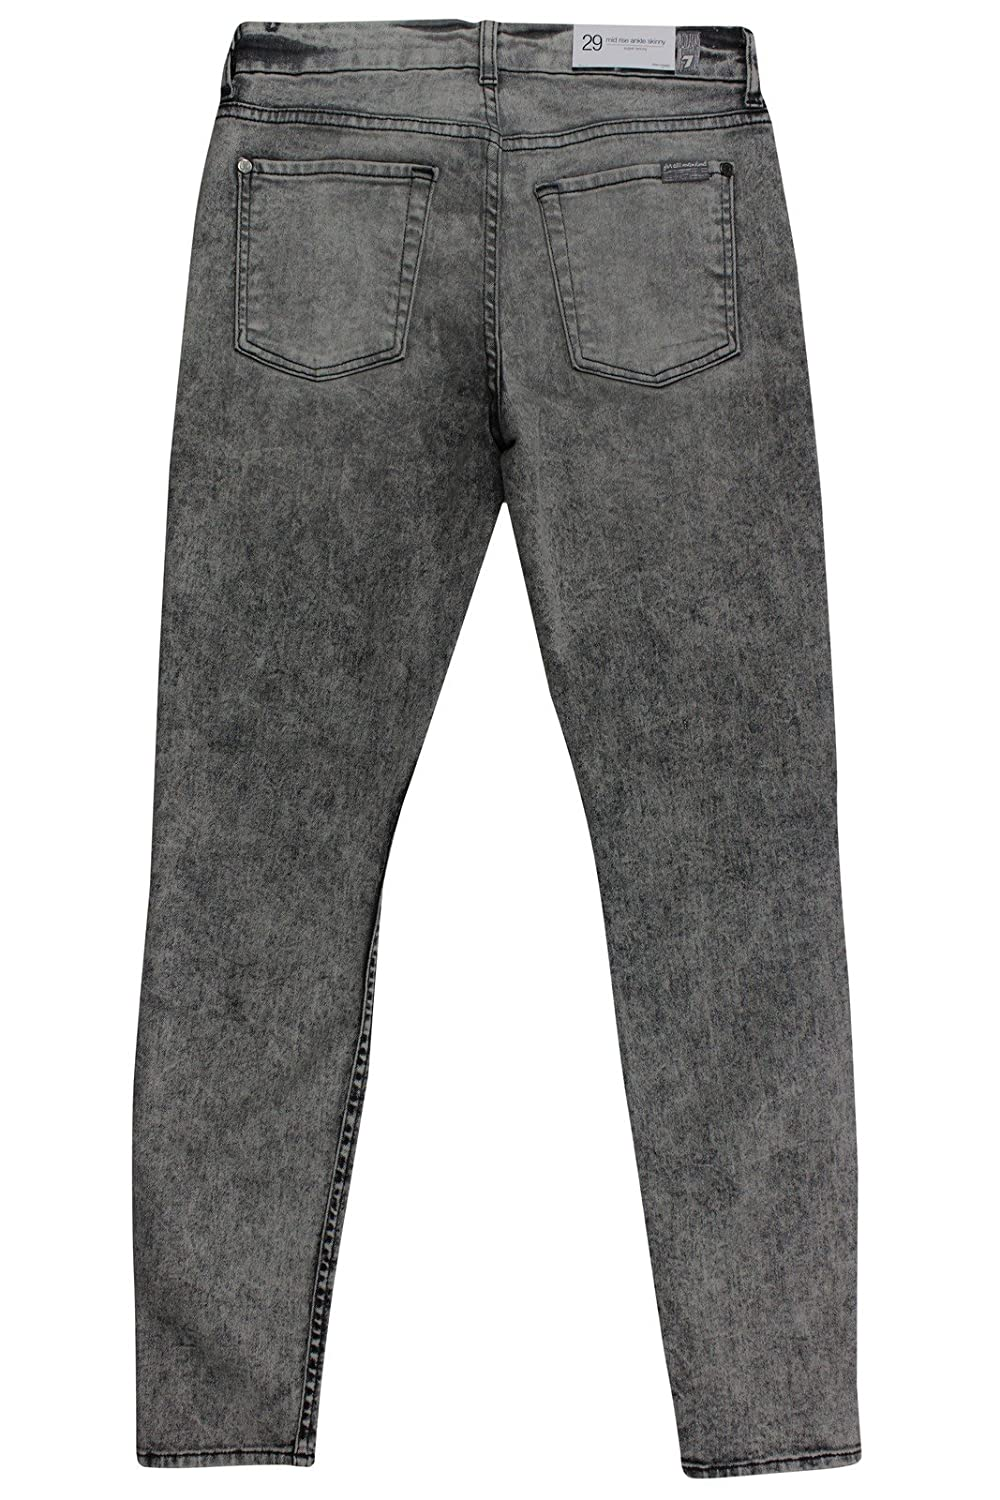 7 for all mankind Women's Grey Faded Mid Rise Ankle Super Skinny Jeans